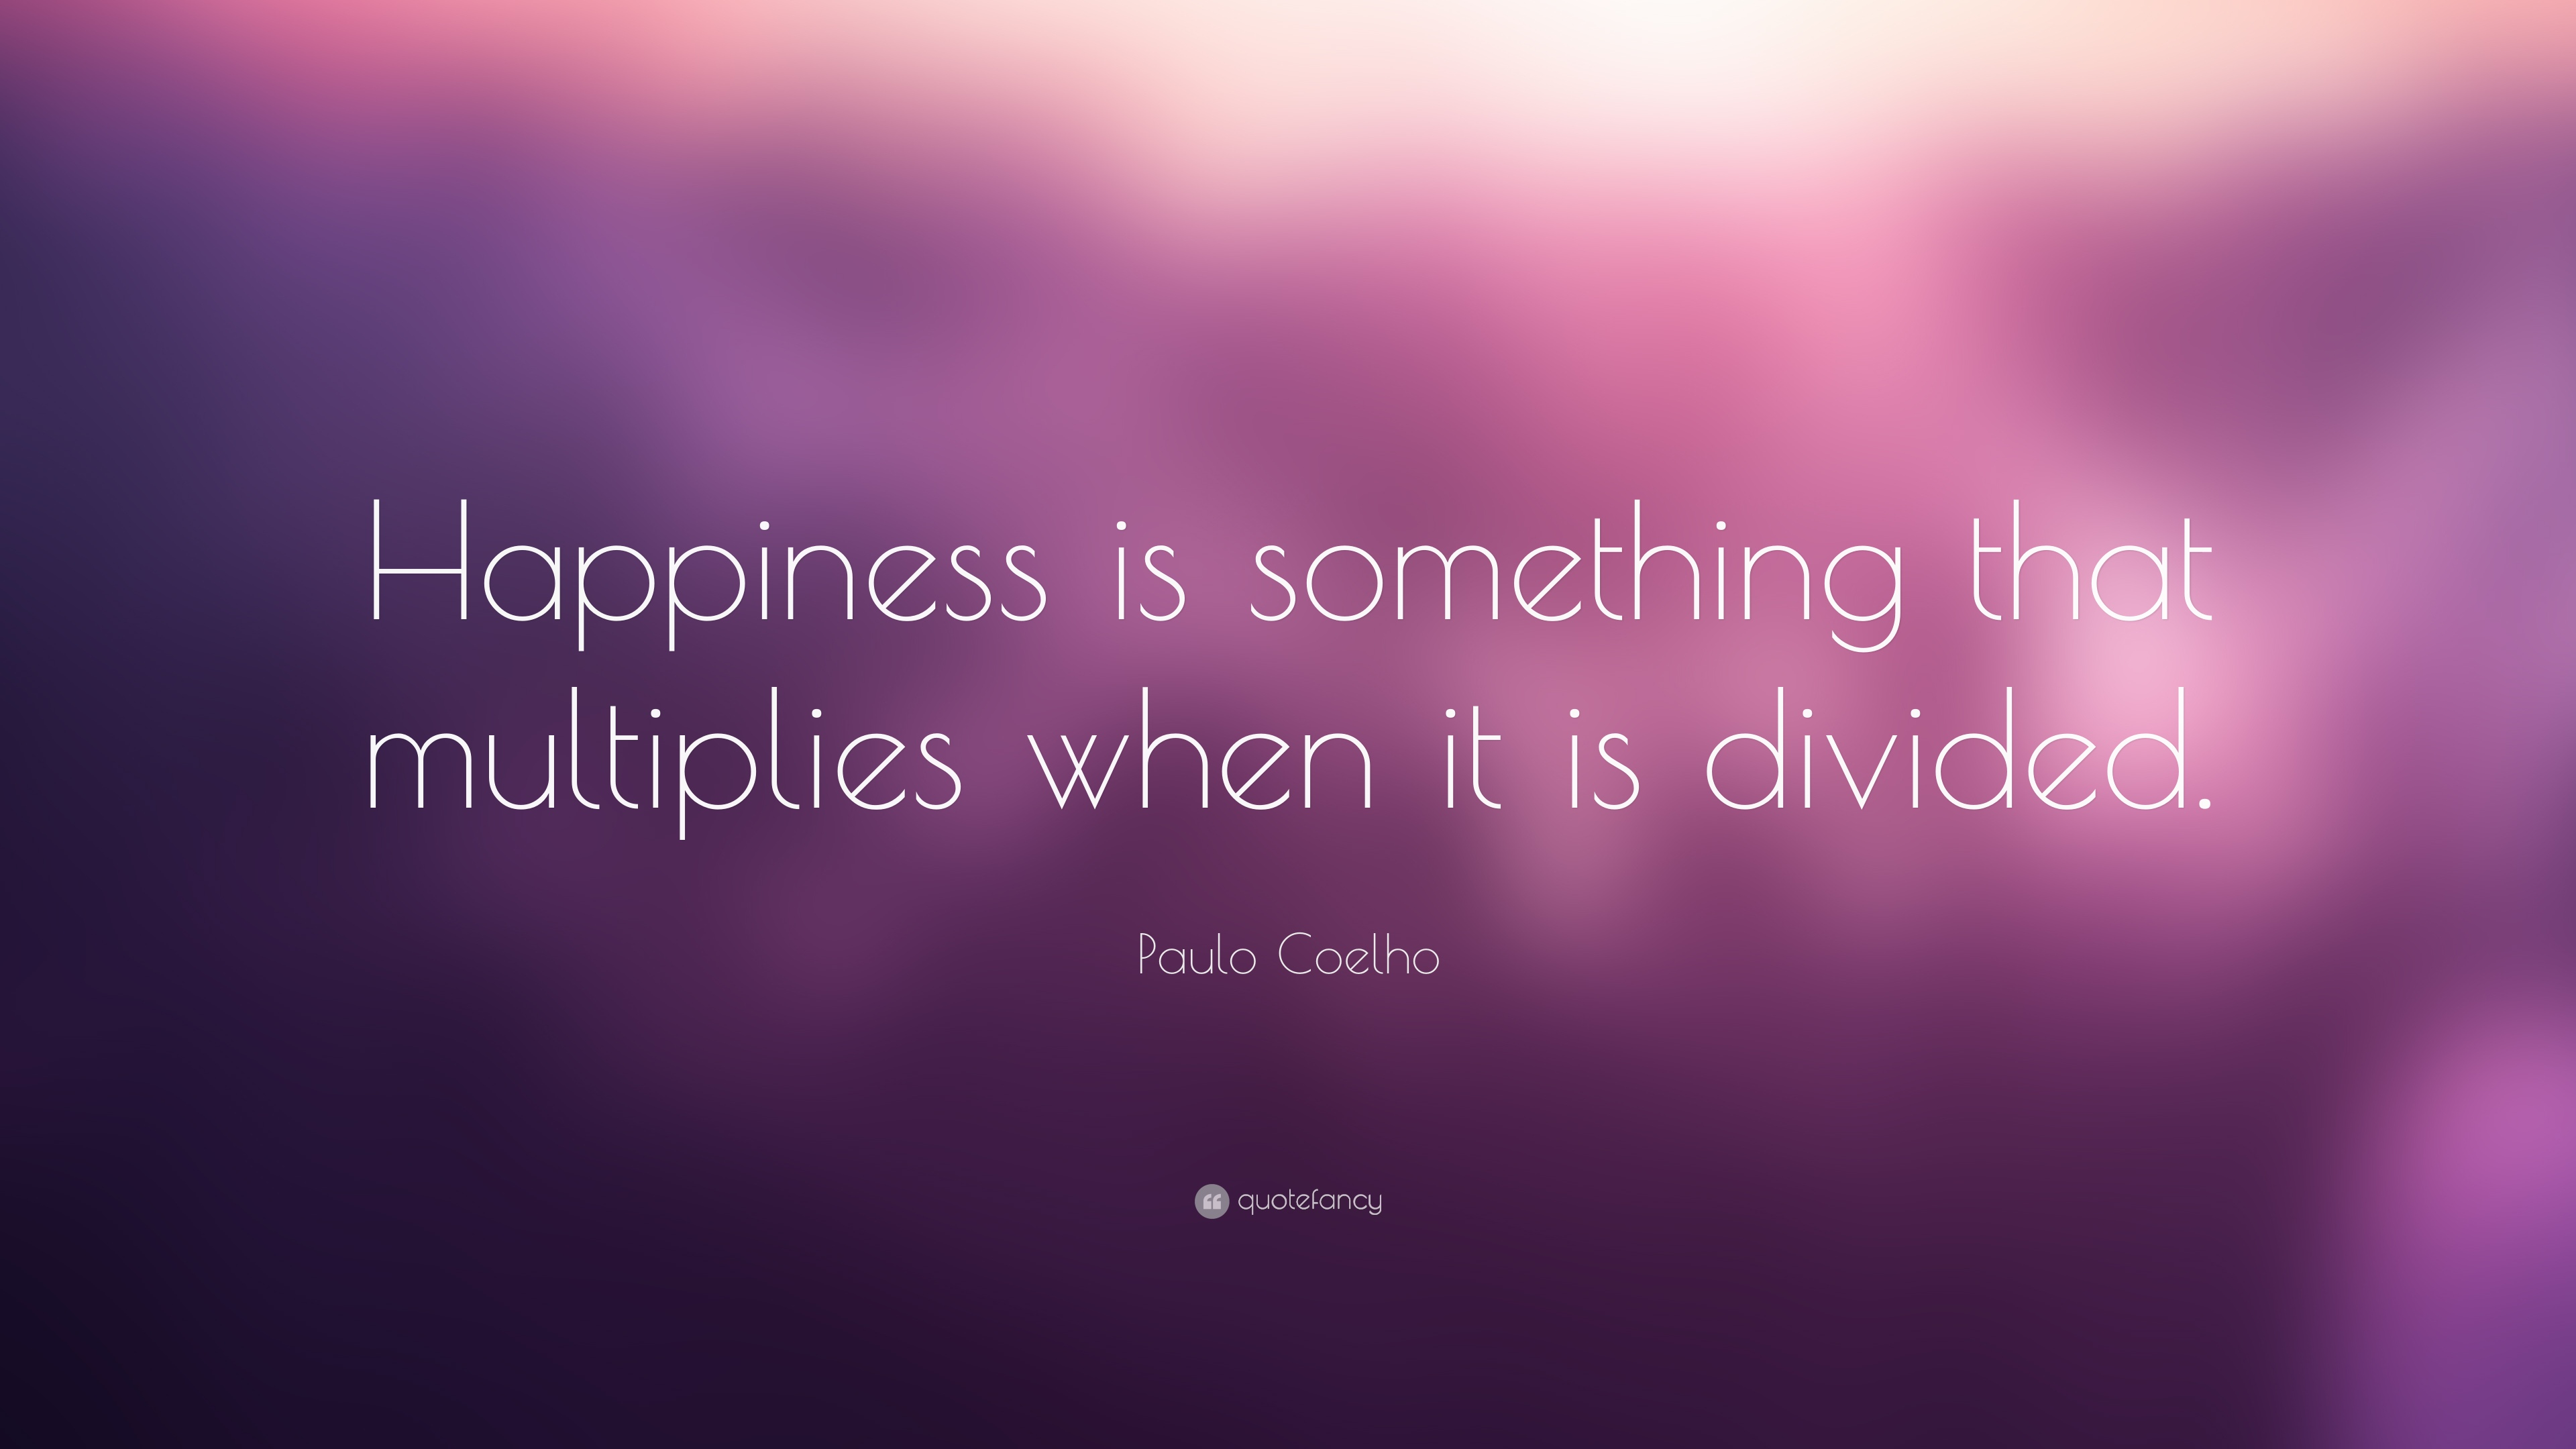 Paulo Coelho Happiness Is Something That Multiplies When It Is Divided